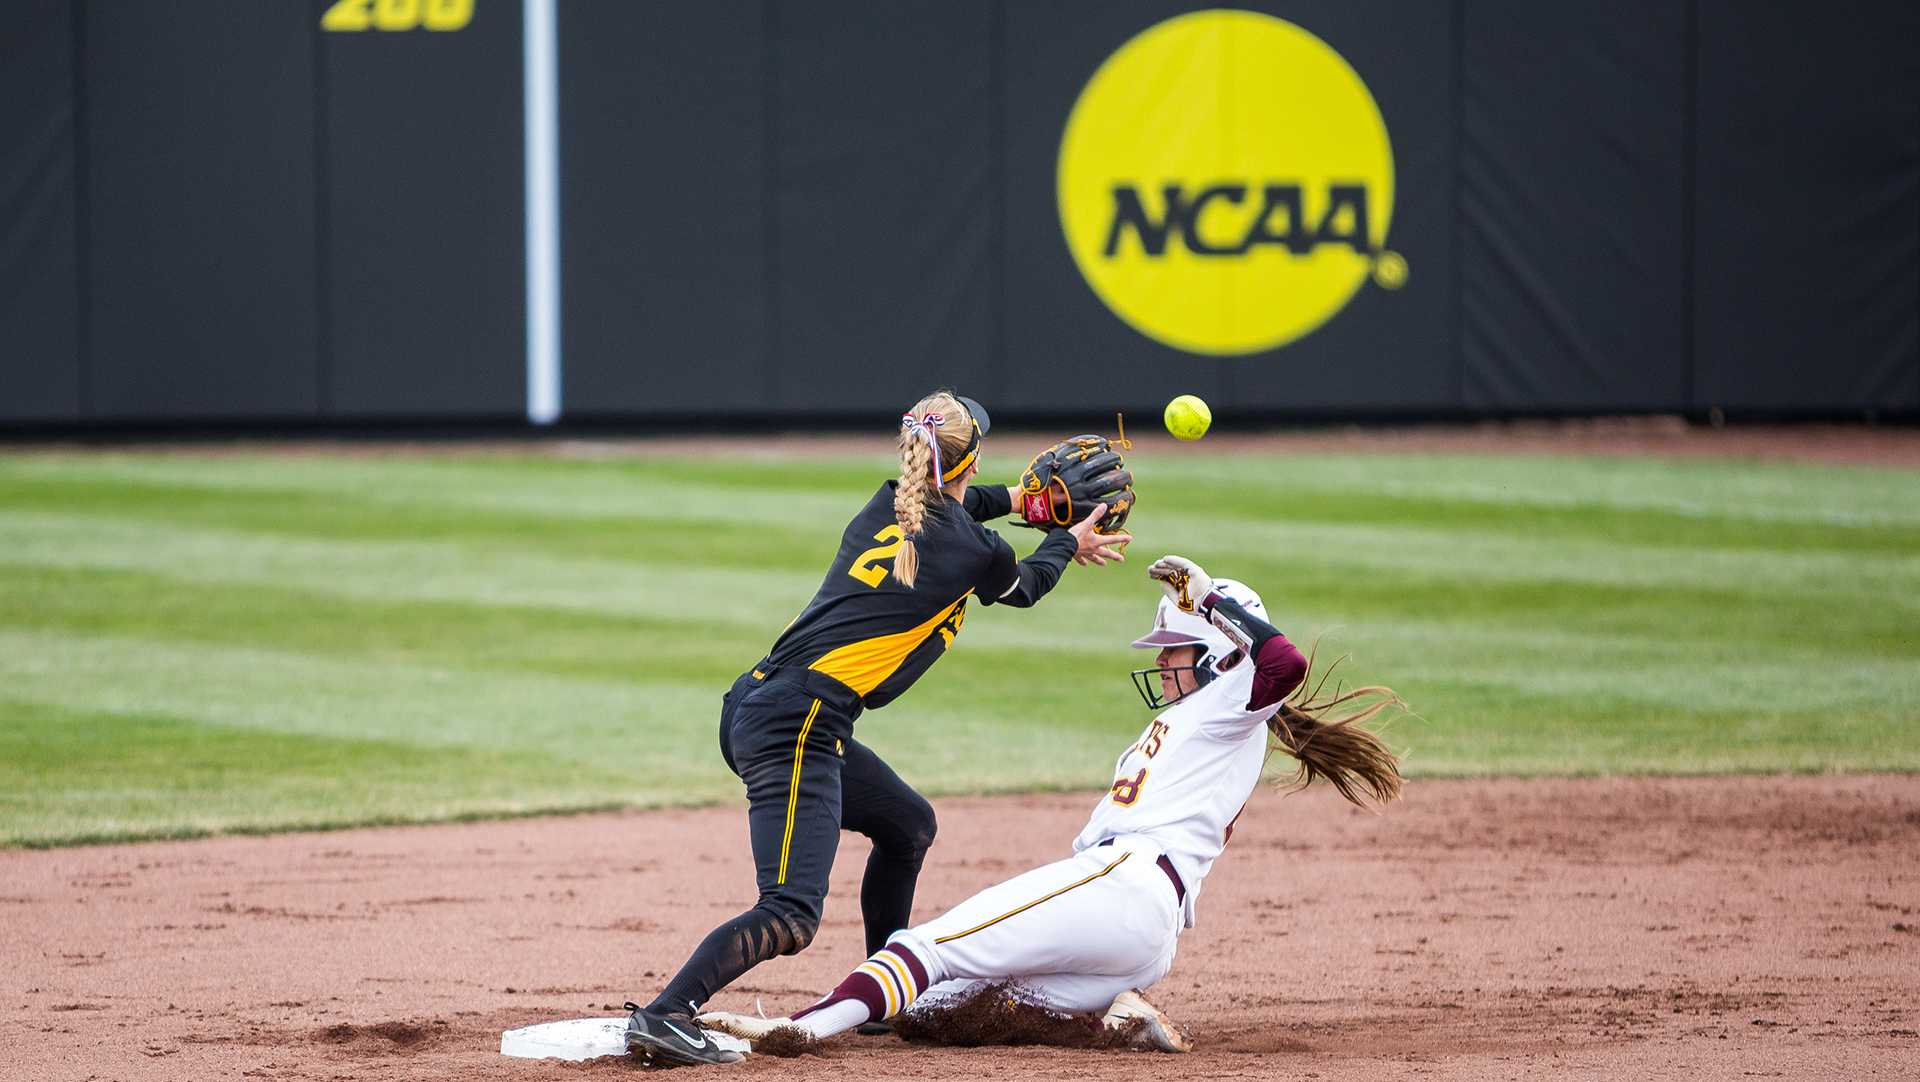 University of Iowa softball player Aralee Bogar waits for the ball as a Minnesota player slides to safety during a game against the University of Minnesota on Friday, Apr. 13, 2018. The Gophers defeated the Hawkeyes 6-2. (David Harmantas/The Daily Iowan)